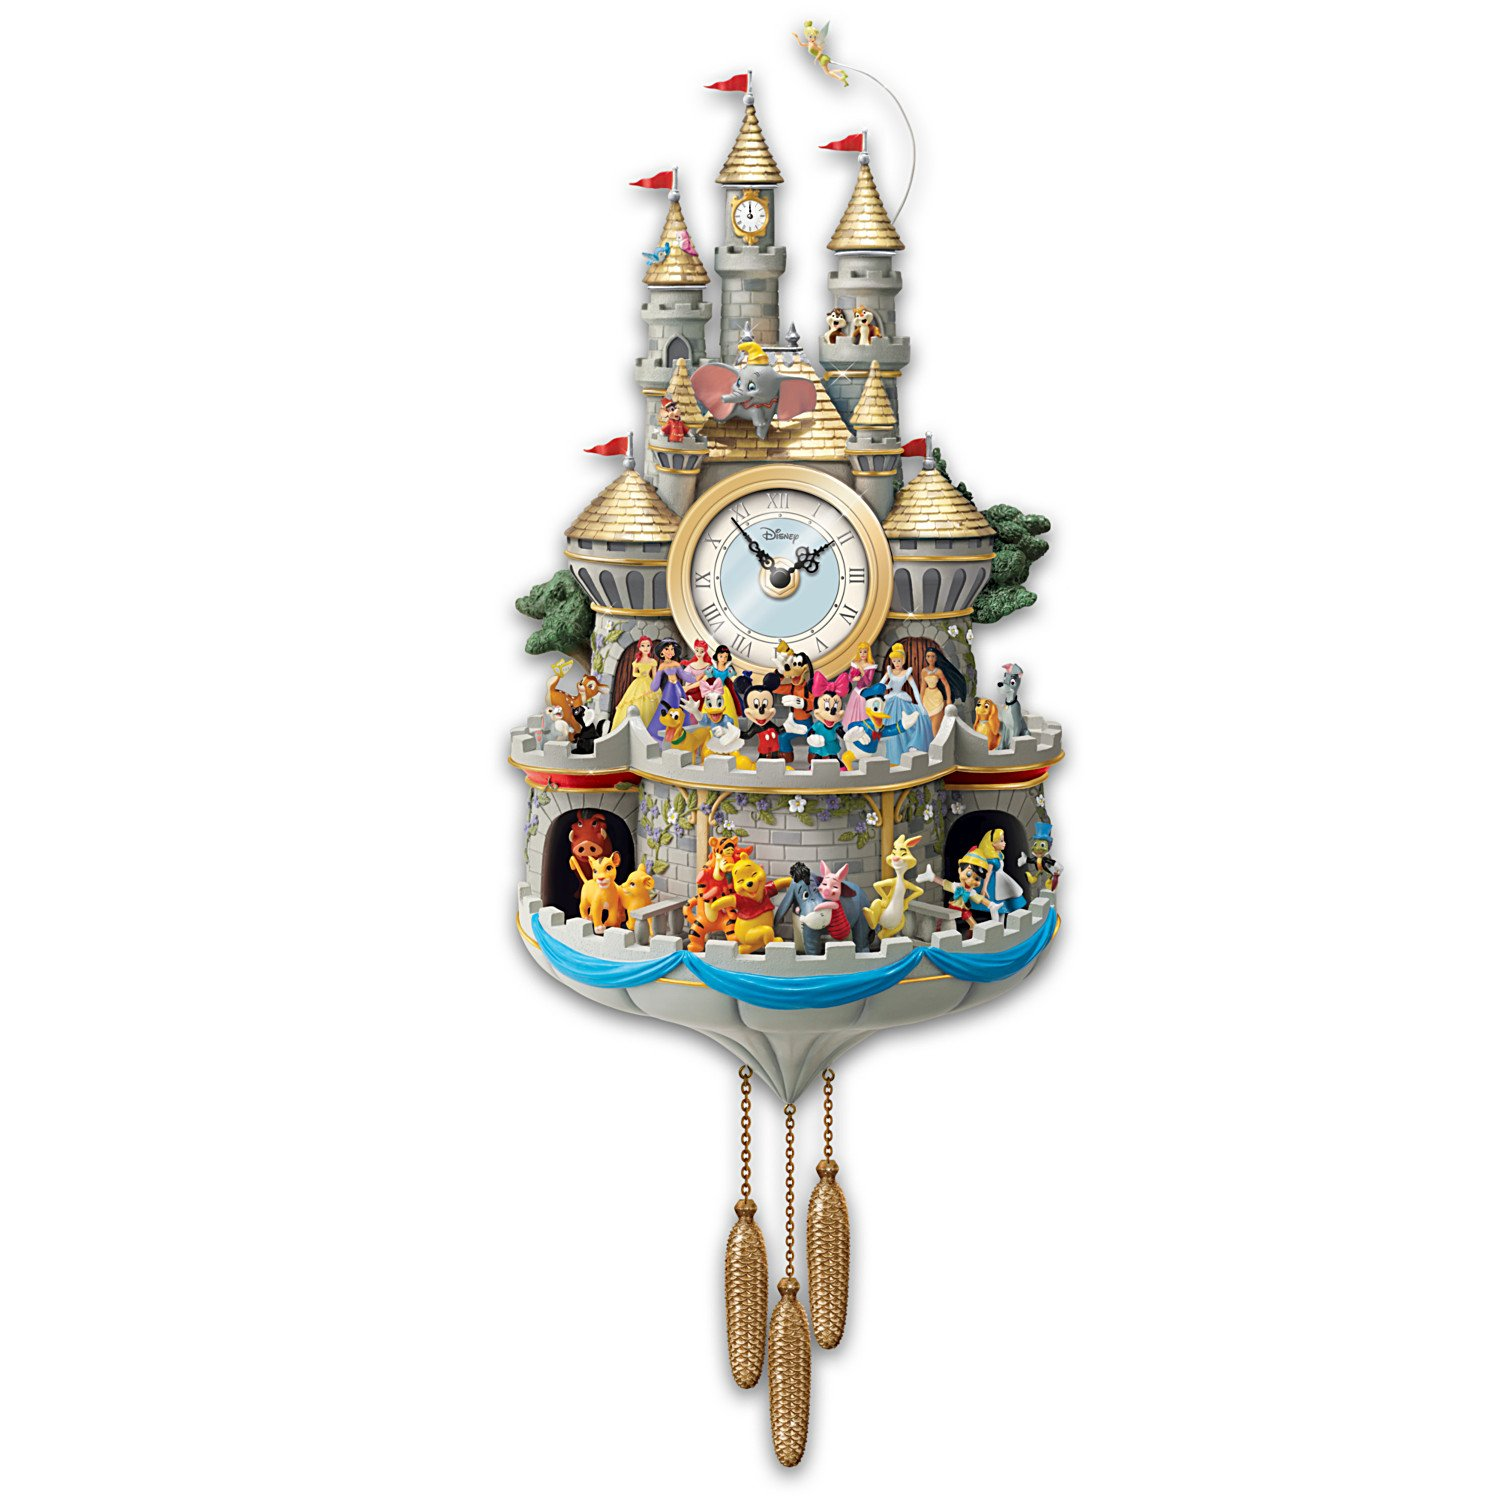 Amazon.com: Bradford Exchange Disney Cuckoo Clock Has 43 Characters ...